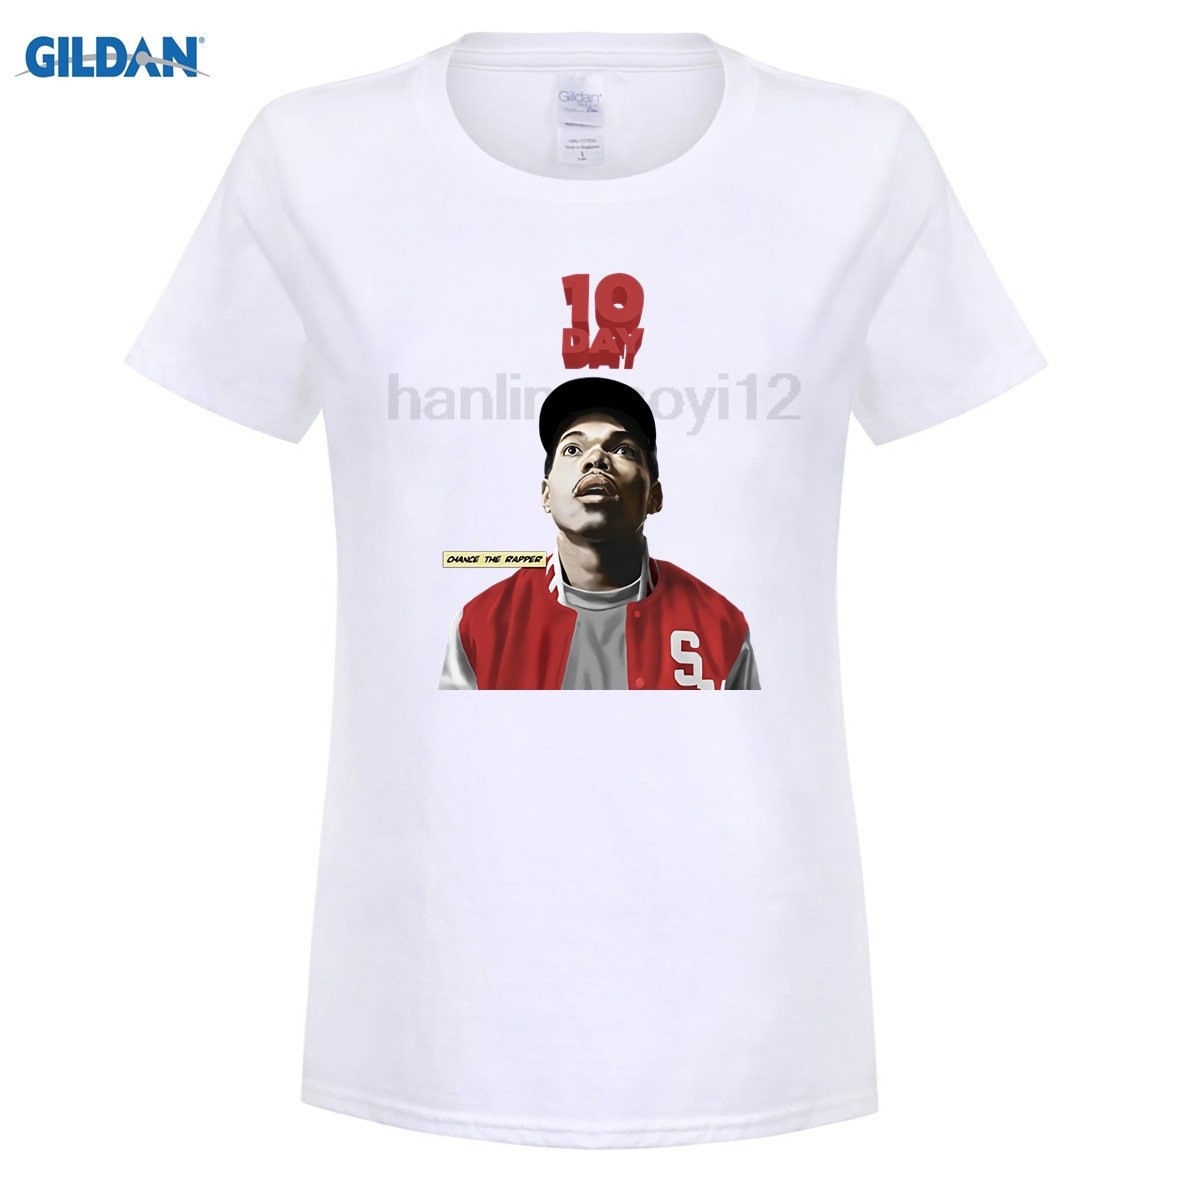 GILDAN Casual T Shirts Chance The Rapper Brandon Breaux O Neck Short Tee Shirt Pop Teenage Create T-Shirt for women